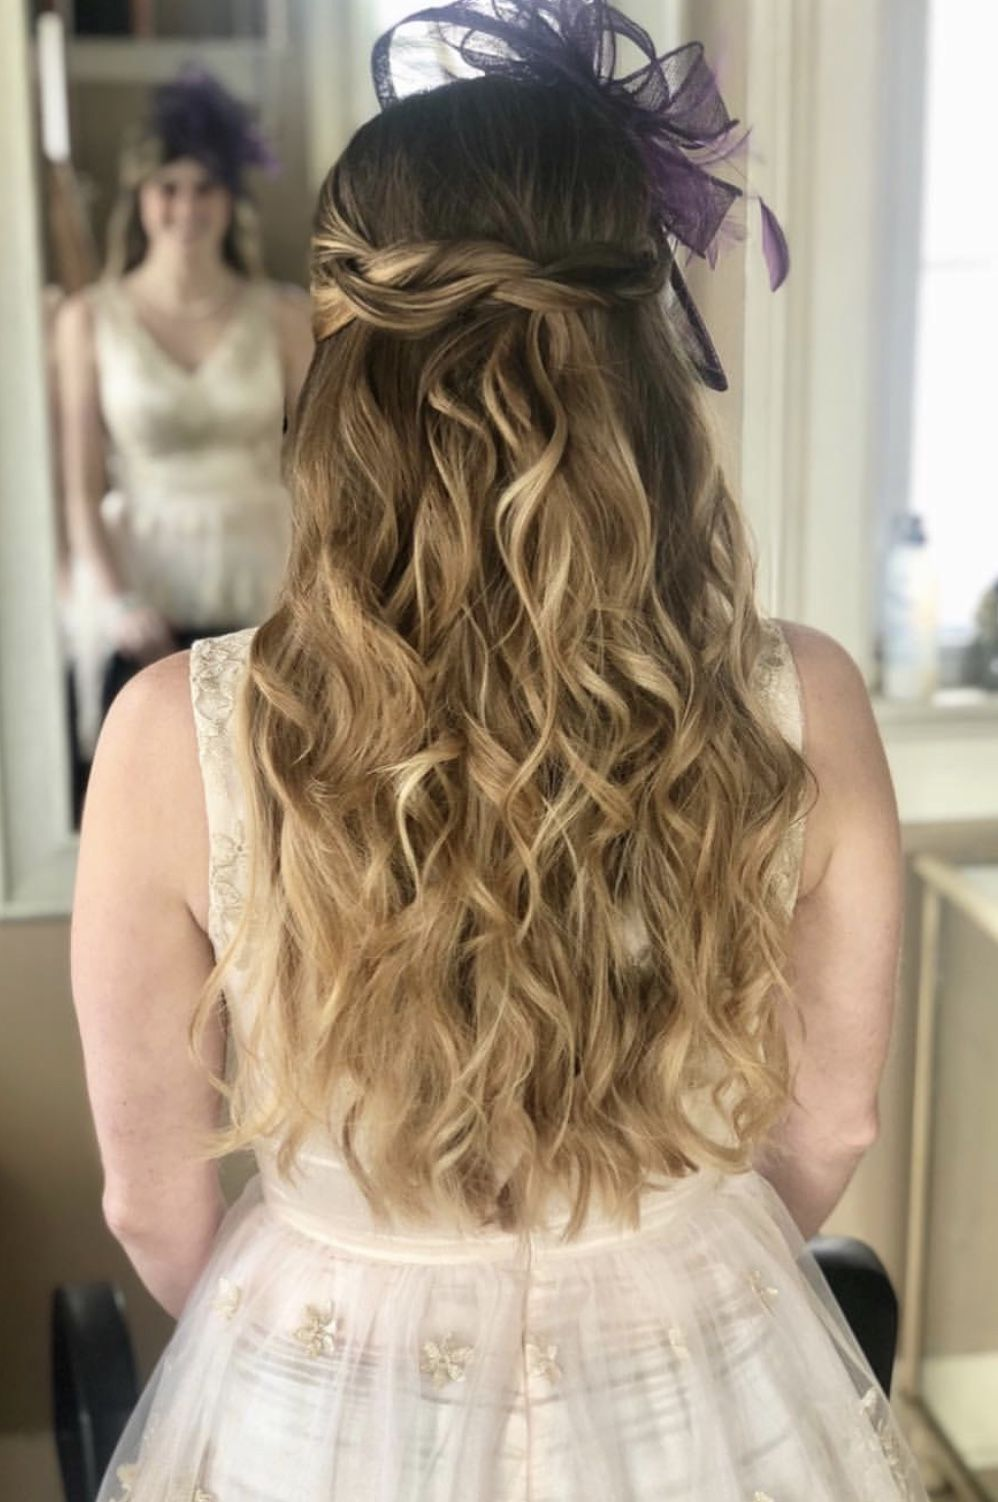 pin by mehec zahra on hair style in 2019 | hair styles, long